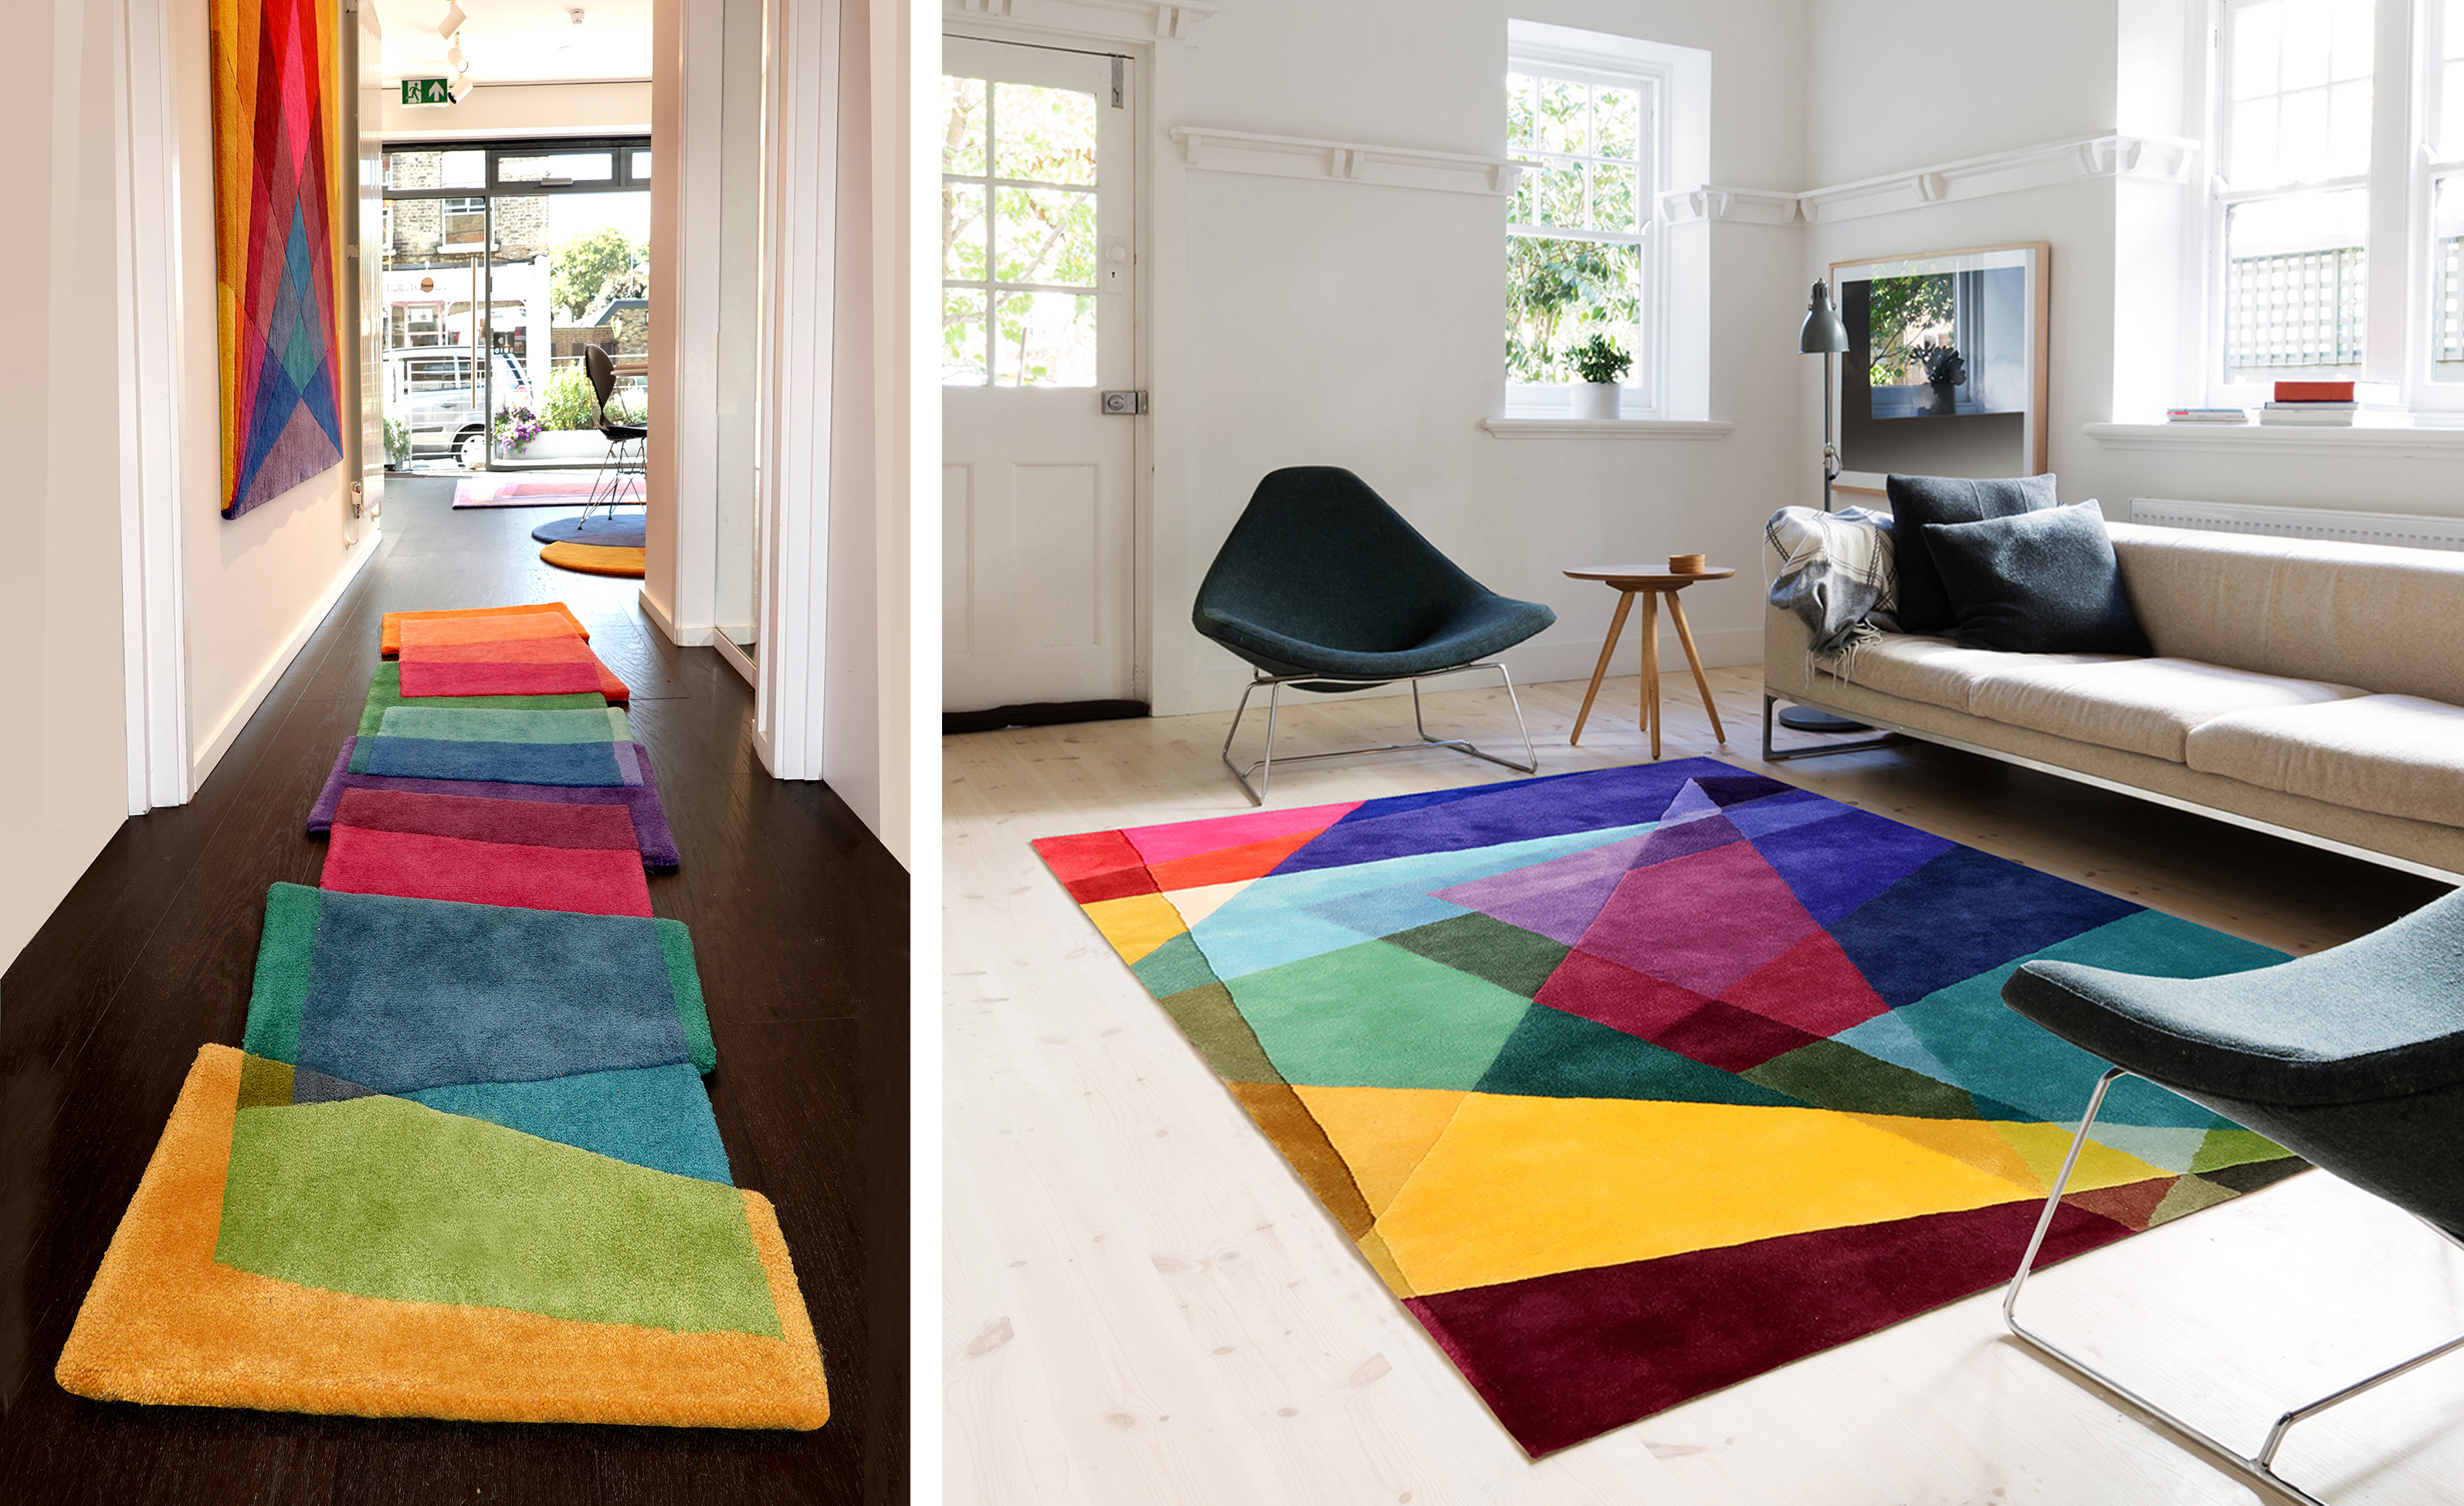 Two new vibrant contemporary rug designs launched by Sonya Winner at London Design Festival 2019